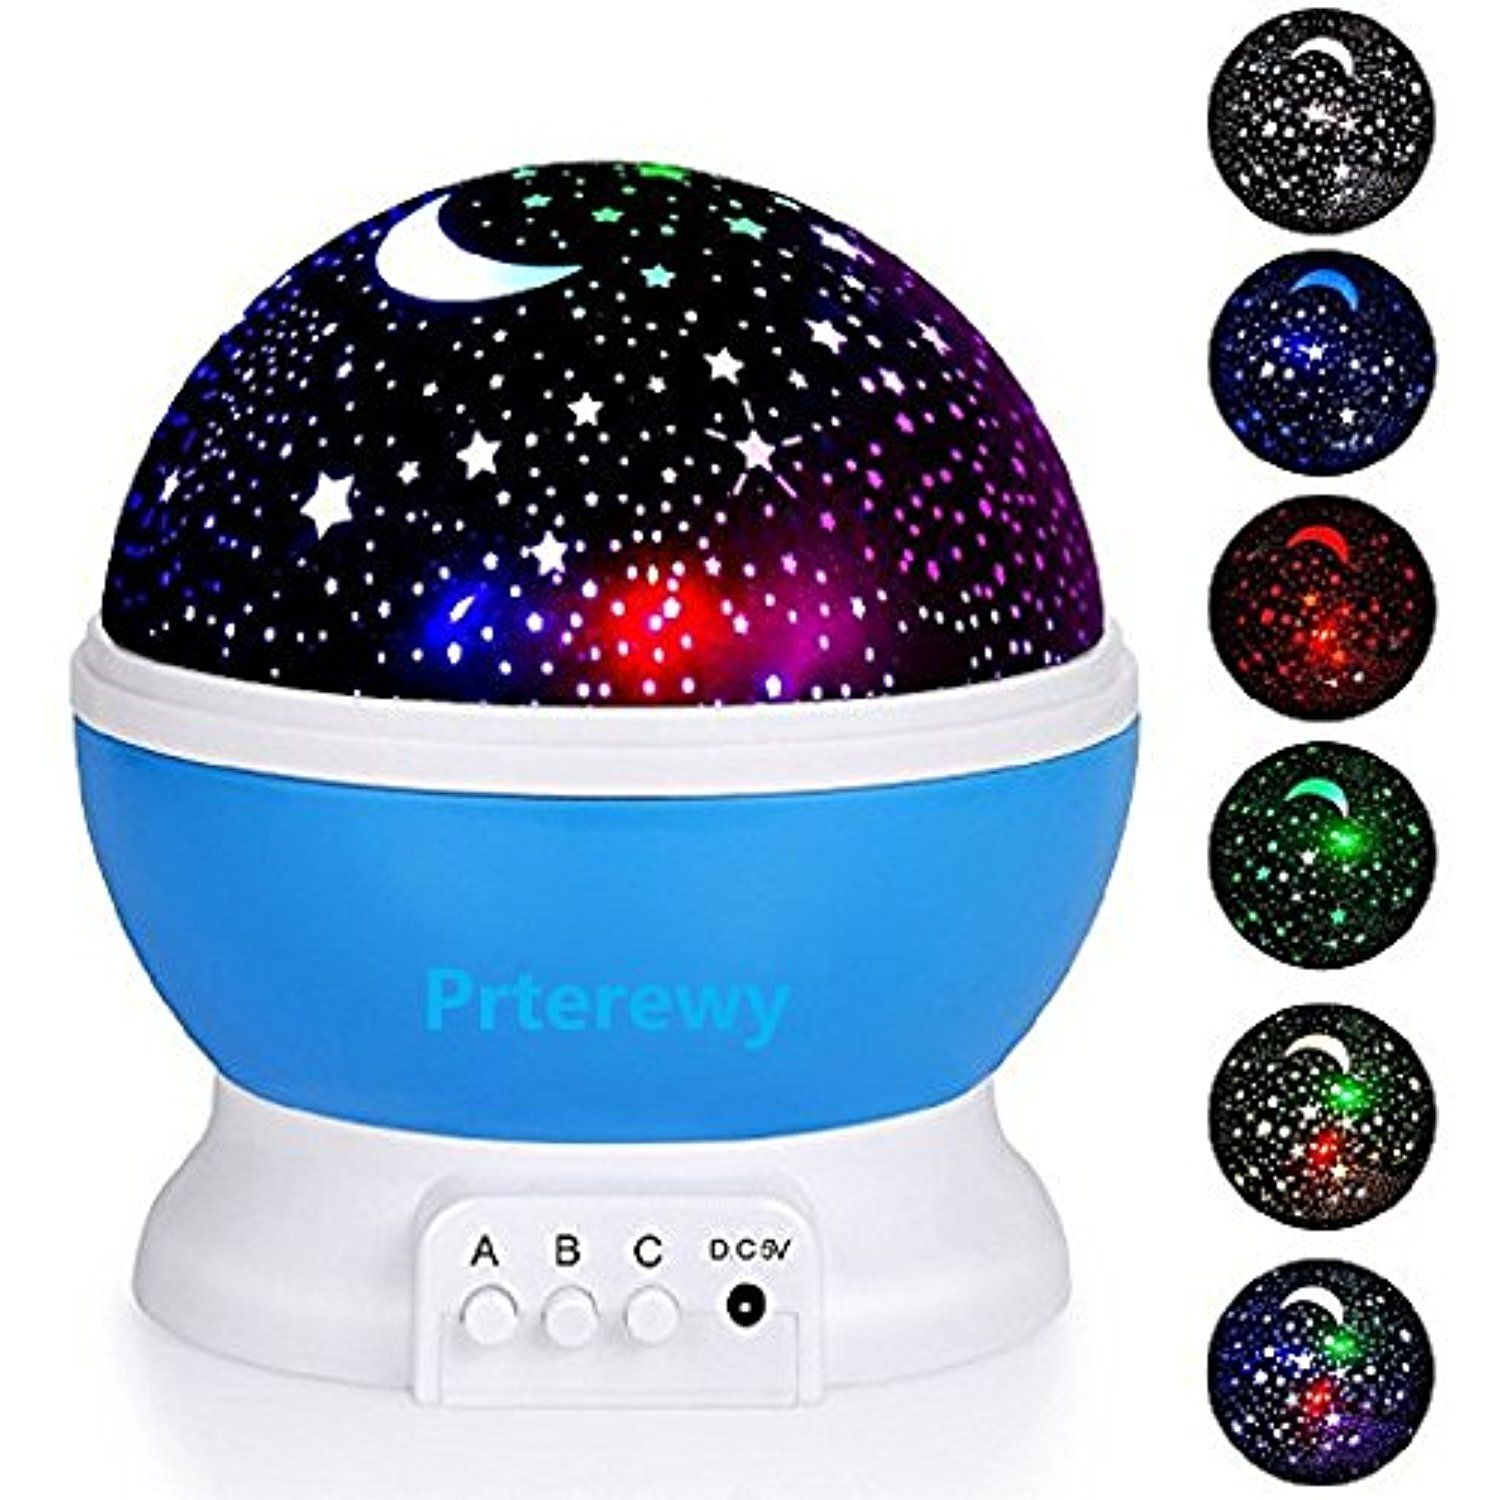 Best baby night sky light projector for kids 360 degree rotation best baby night sky light projector for kids 360 degree rotation led lamp with usb aloadofball Choice Image